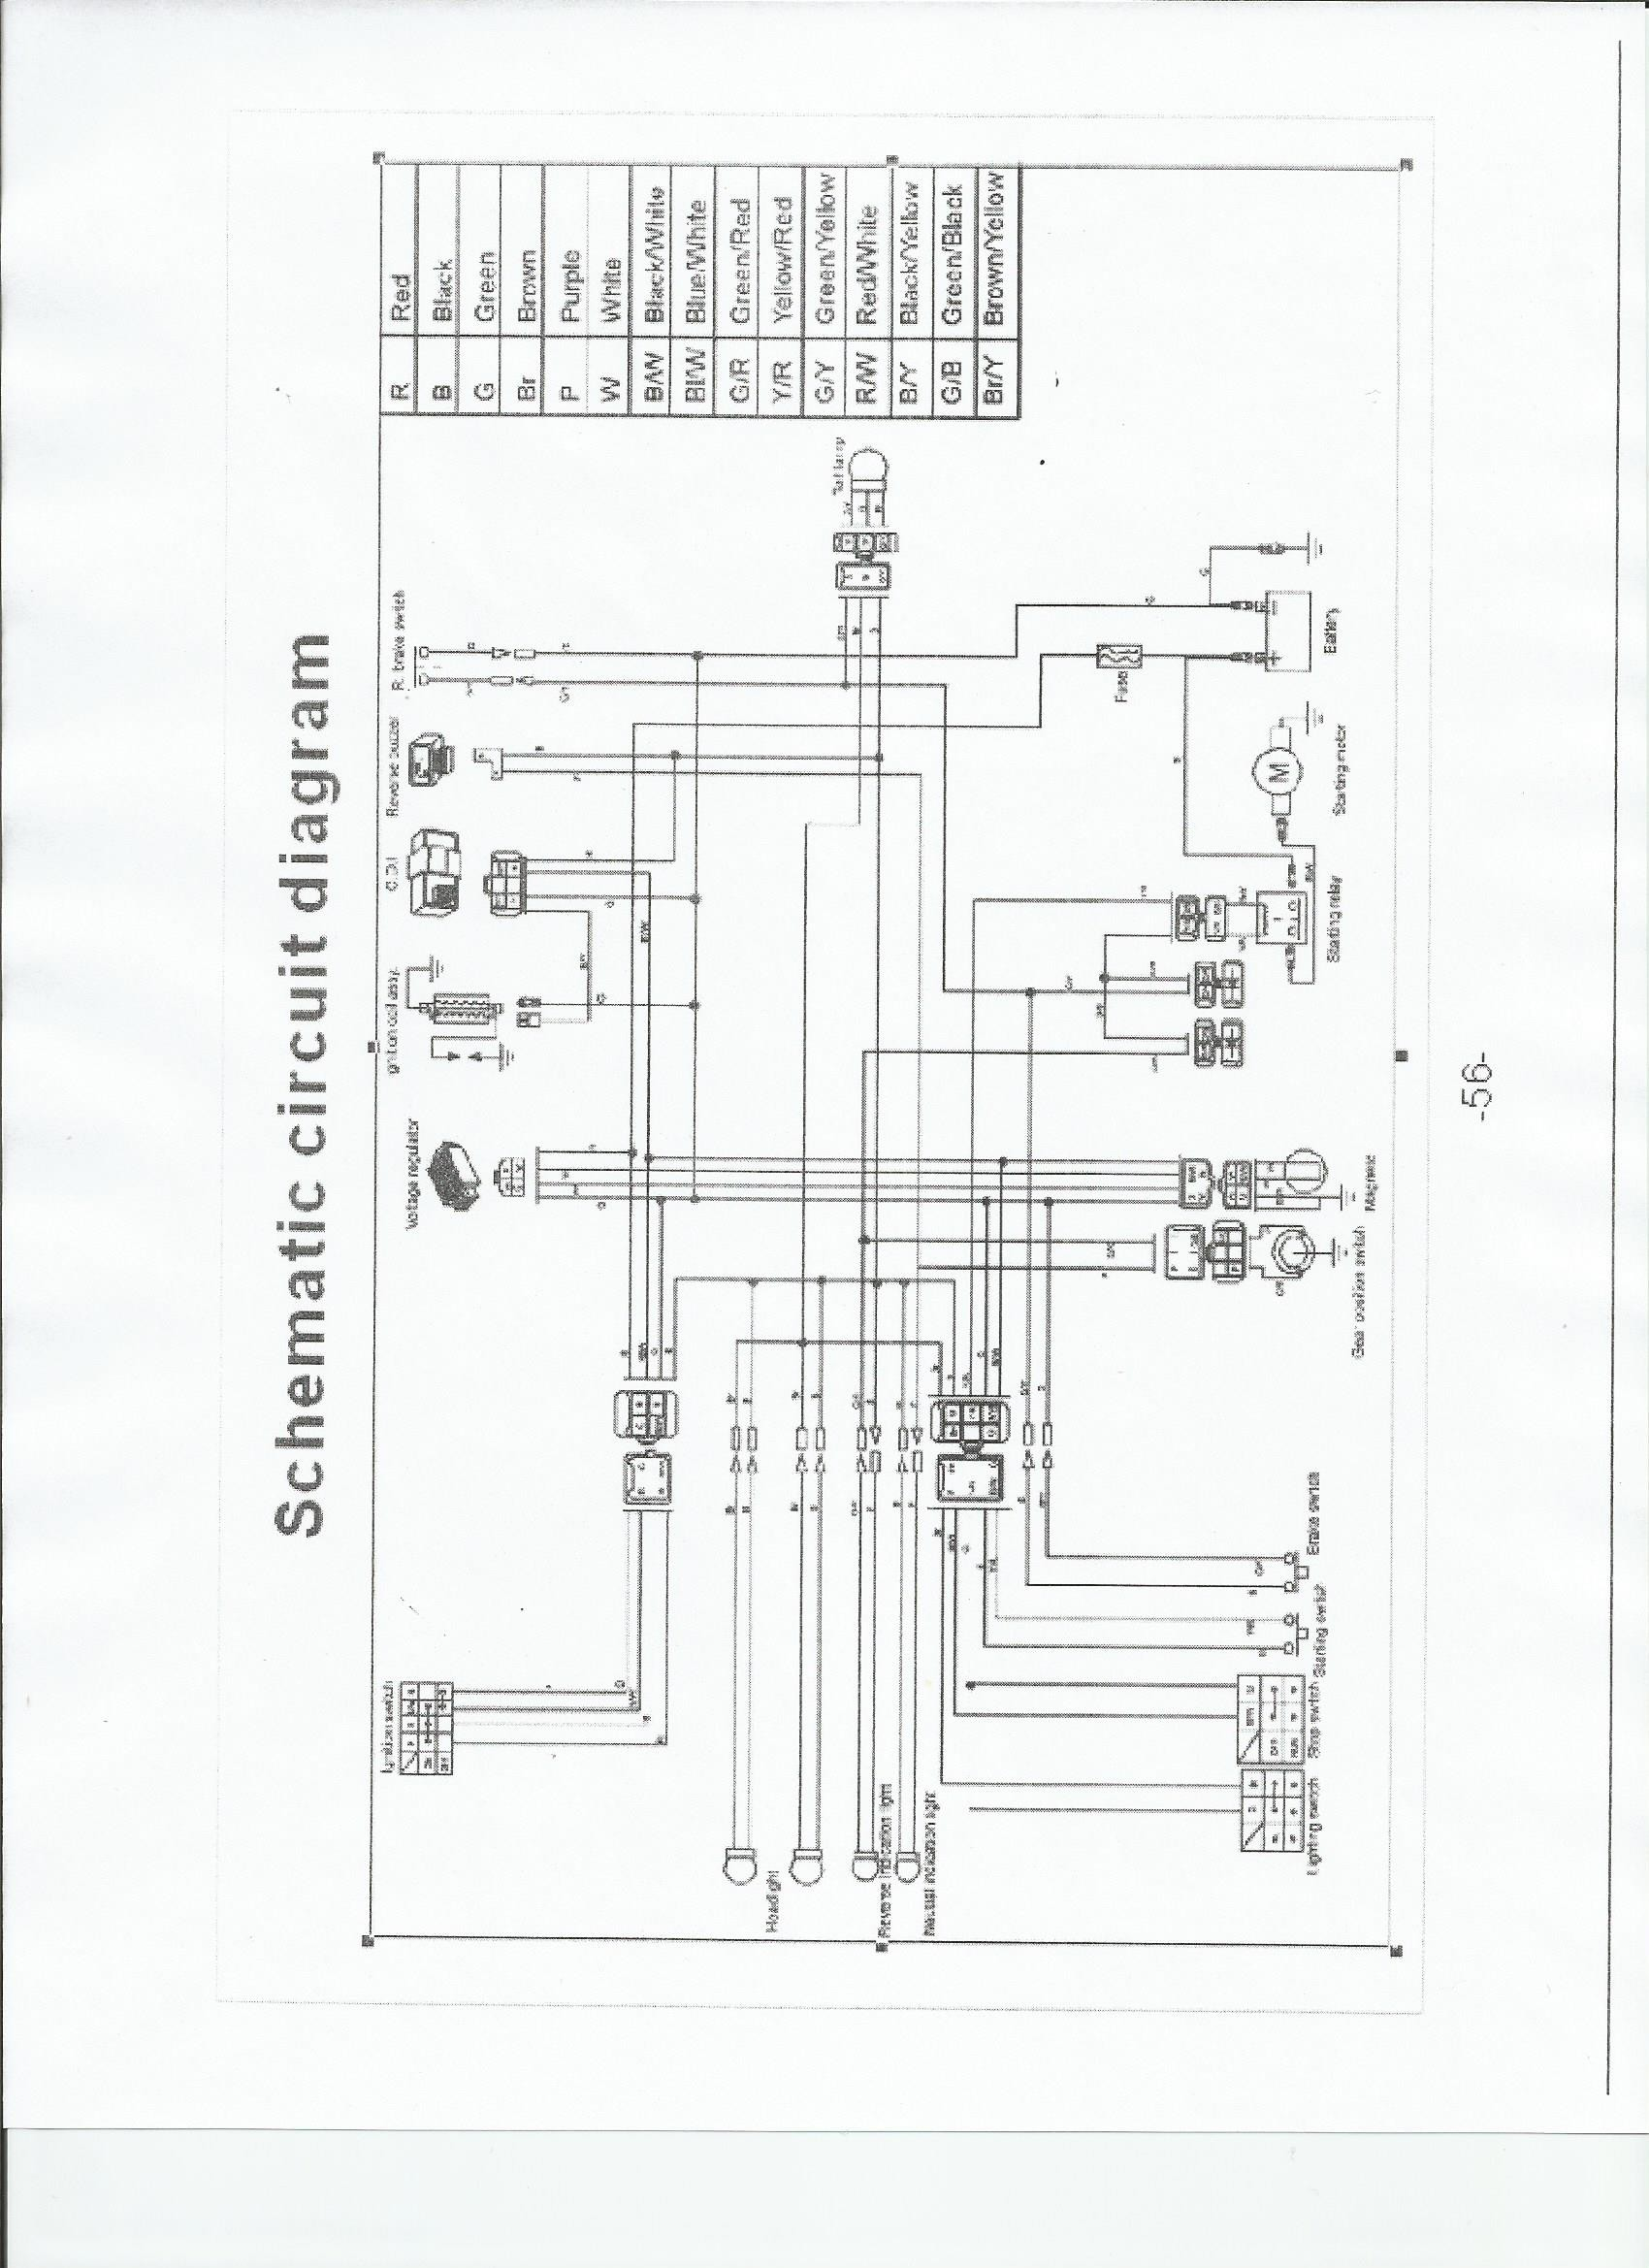 [SCHEMATICS_4CA]  Manco Talon Atv Wiring Diagram Diagram Base Website Wiring Diagram -  VENNDIAGRAMANSWERS.MUSEUMRELOADED.IT | 250cc Chinese Atv Wiring Schematic |  | museumreloaded.it